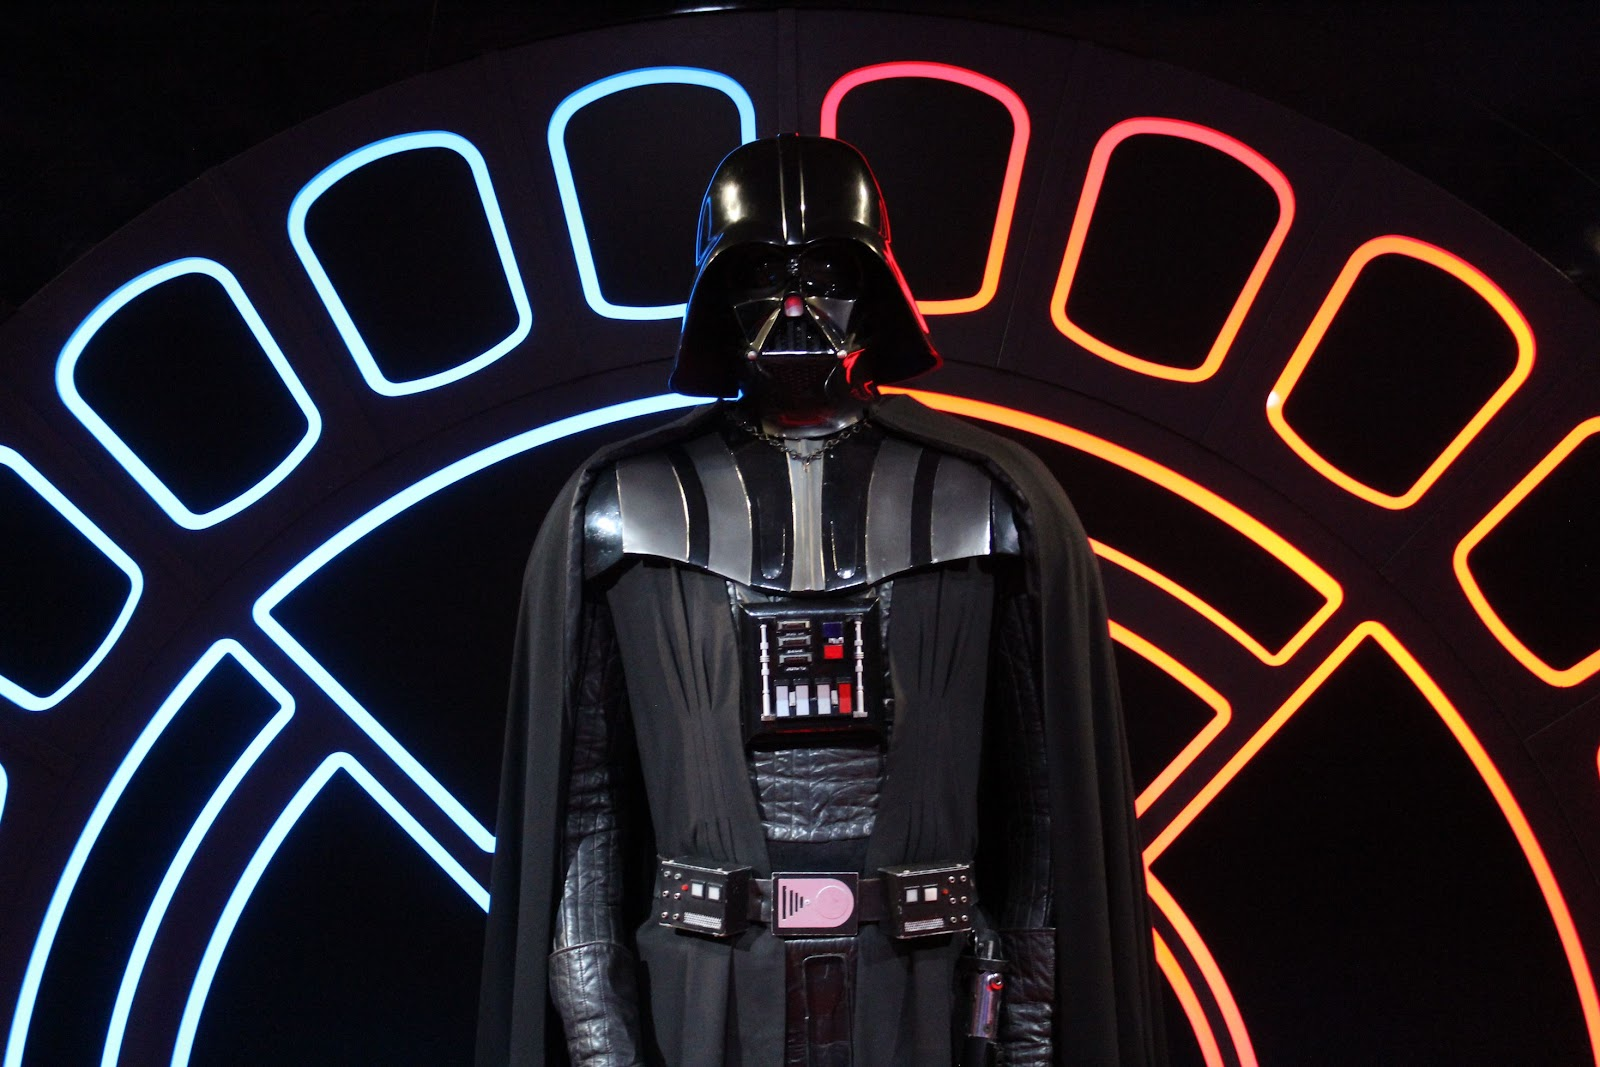 Model of Darth Vader, with light and dark imagery behind him